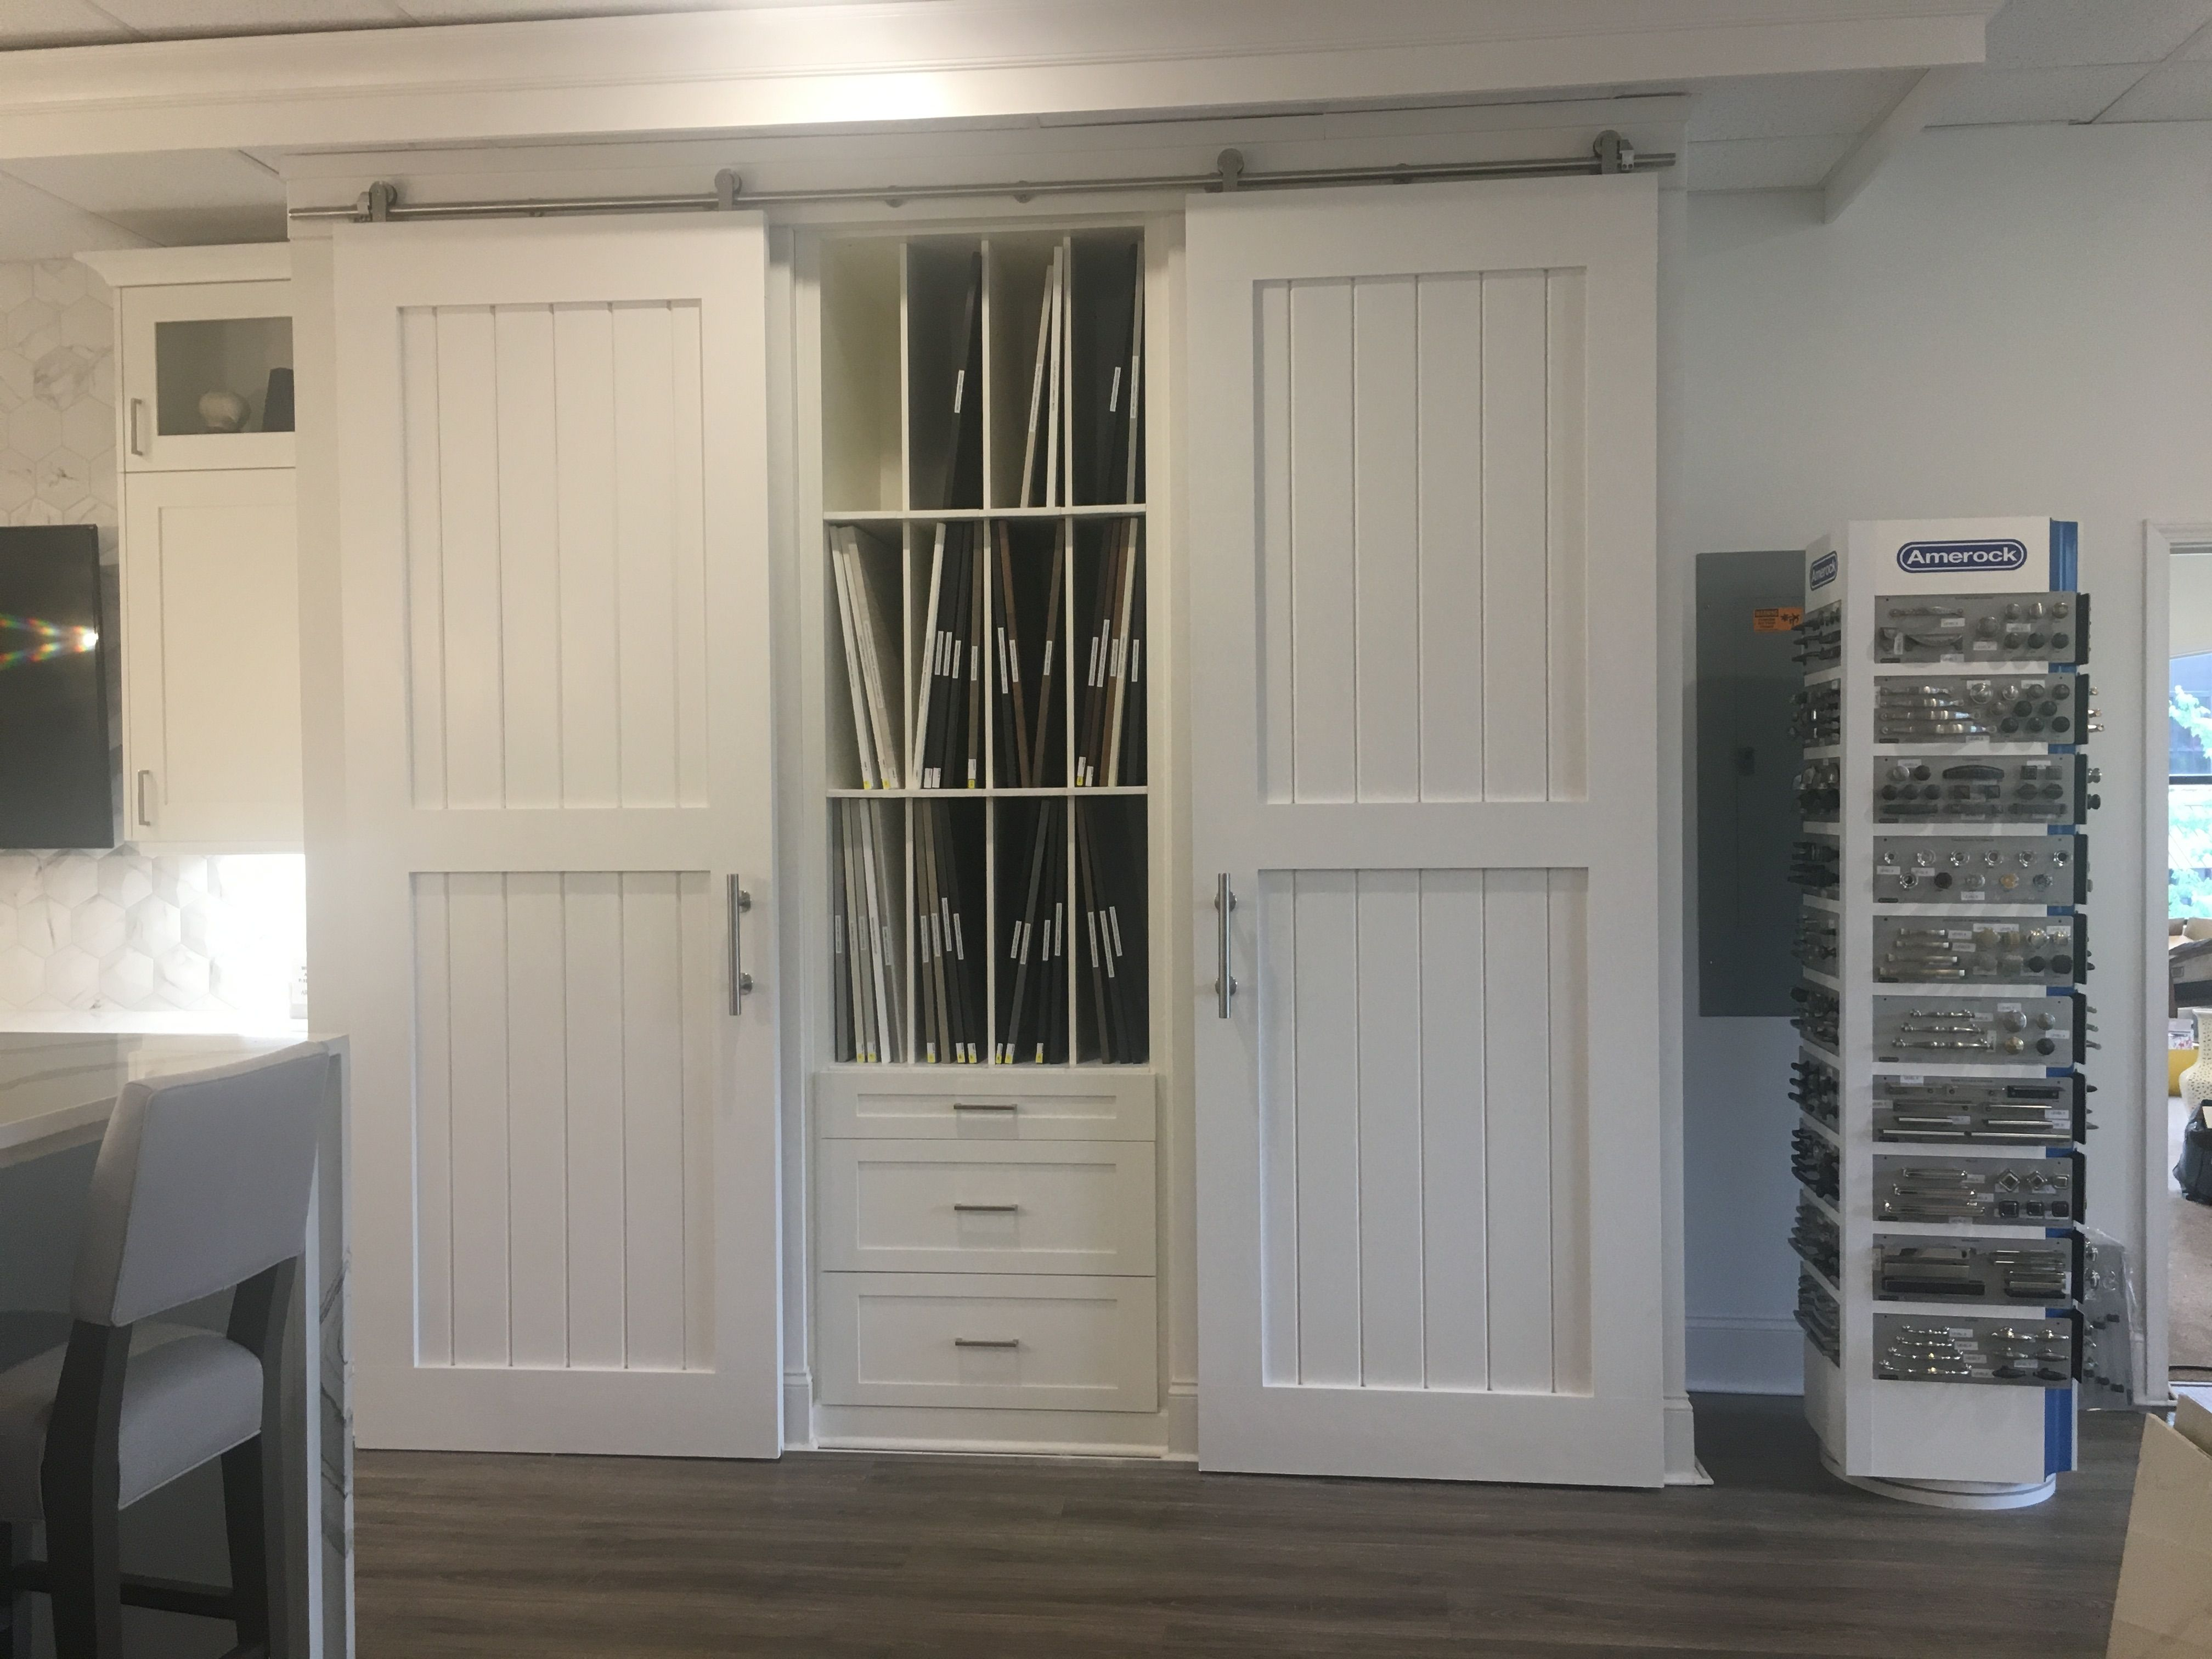 Sliding Doors Conceal Other Bc Cabinet Samples When Not In